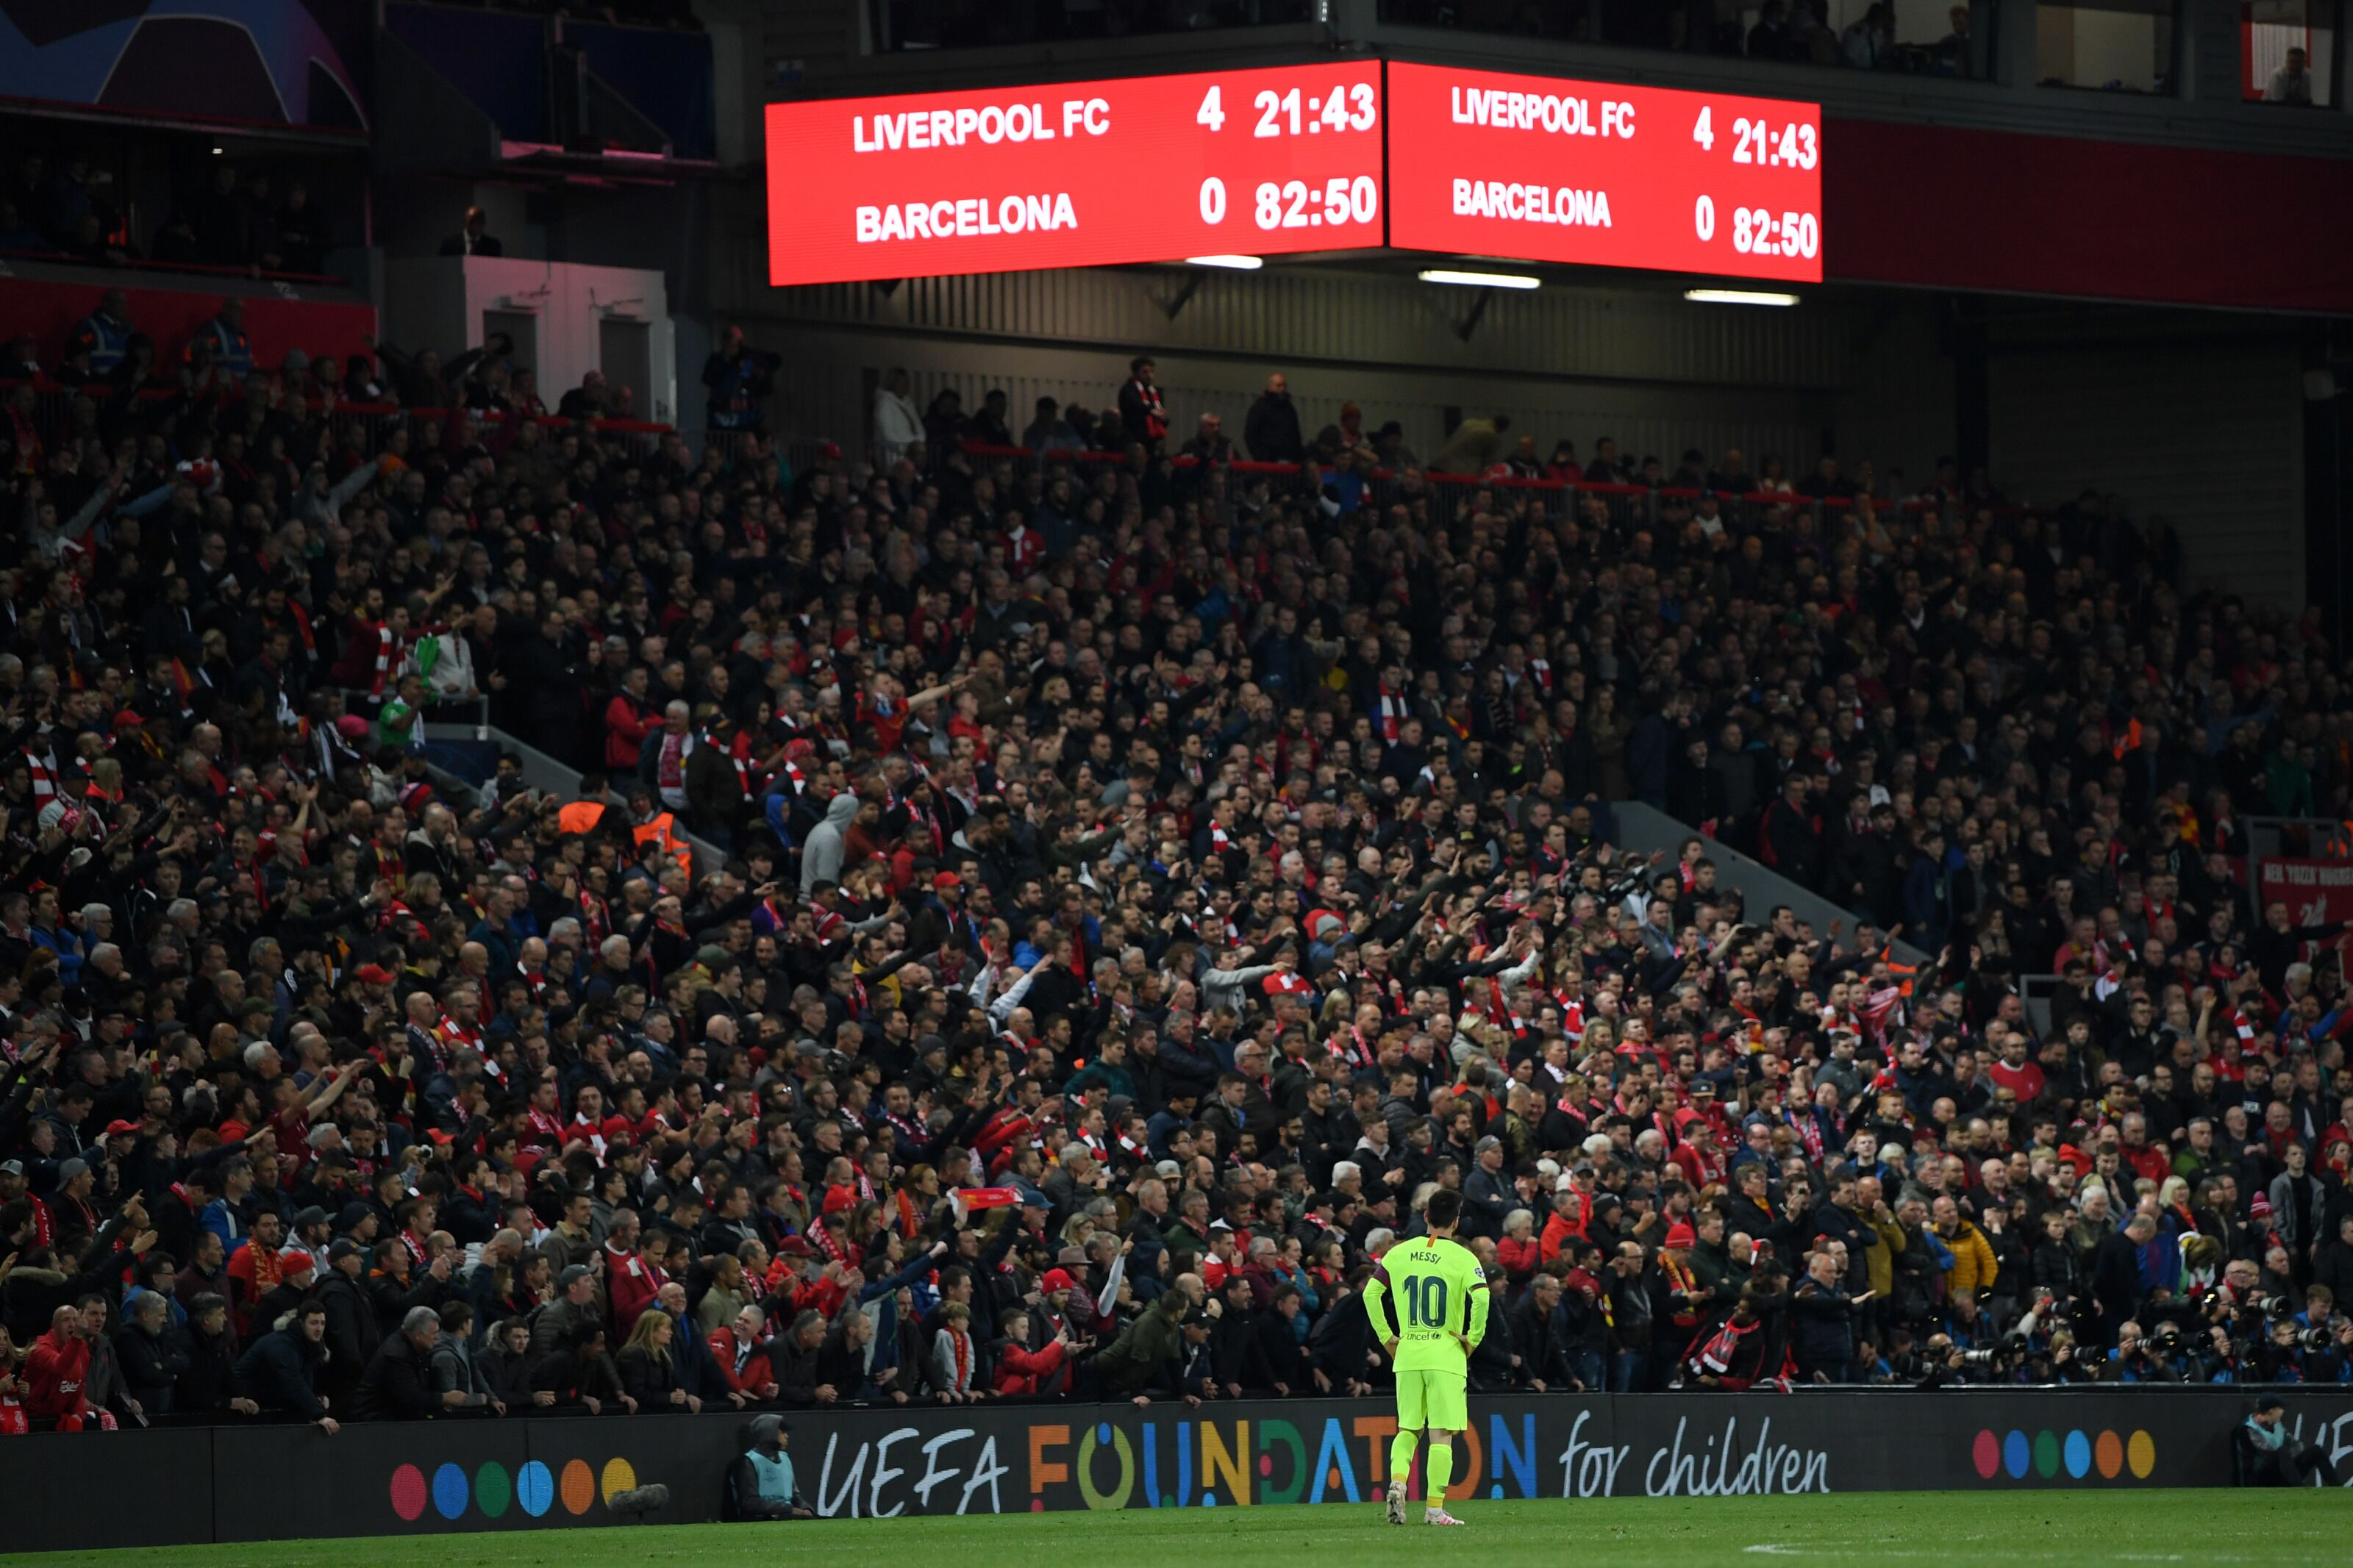 LIVERPOOL, ENGLAND - MAY 07: Lionel Messi of Barcelona looks dejected as the scoreboard reads '4-0' during the UEFA Champions League Semi Final second leg match between Liverpool and Barcelona at Anfield on May 07, 2019 in Liverpool, England. (Photo by Shaun Botterill/Getty Images)